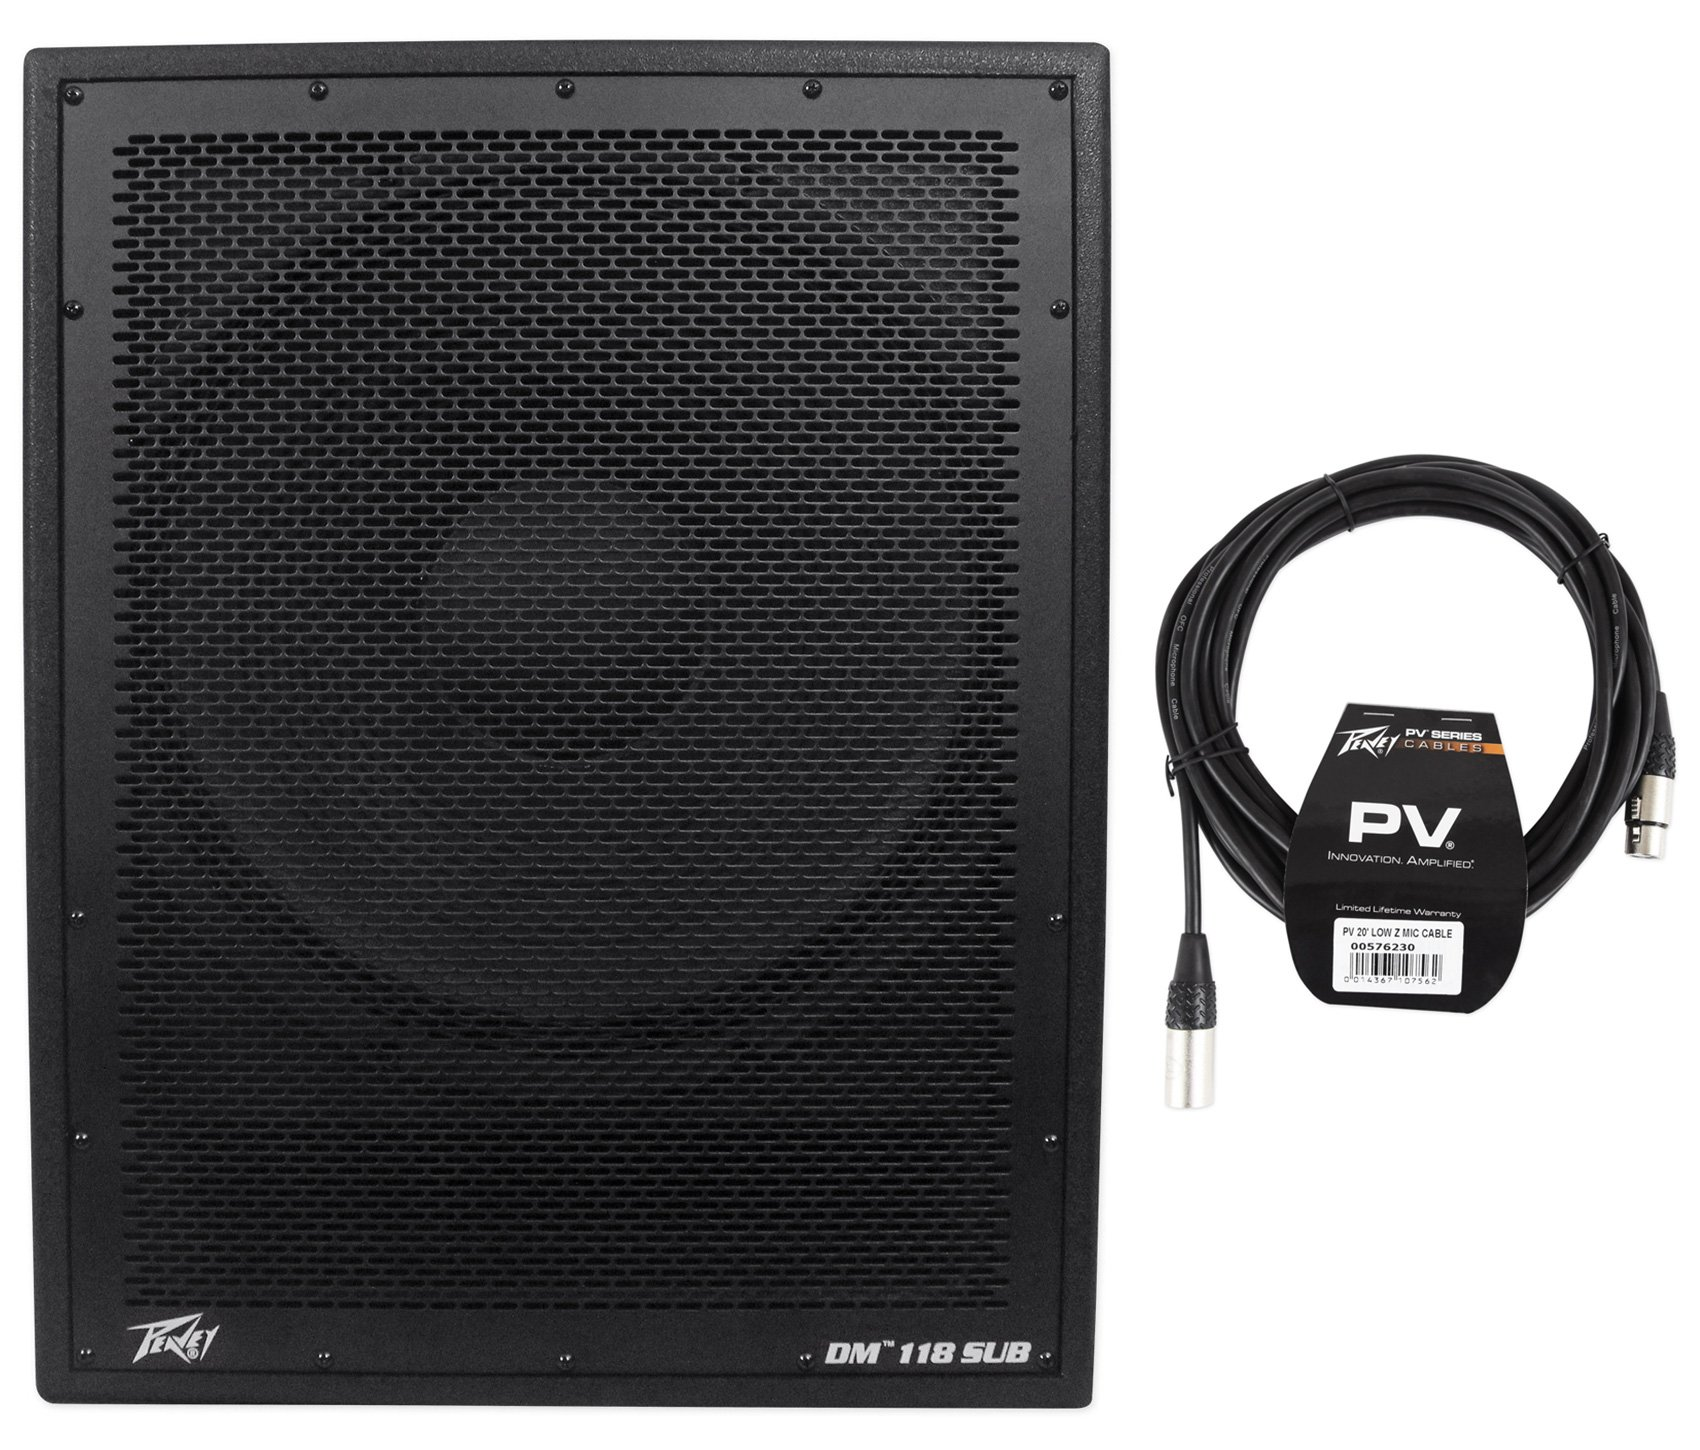 Peavey DM 118 Sub 18'' 1000W Powered Subwoofer+Digital DSP+XLR Cable by Peavey